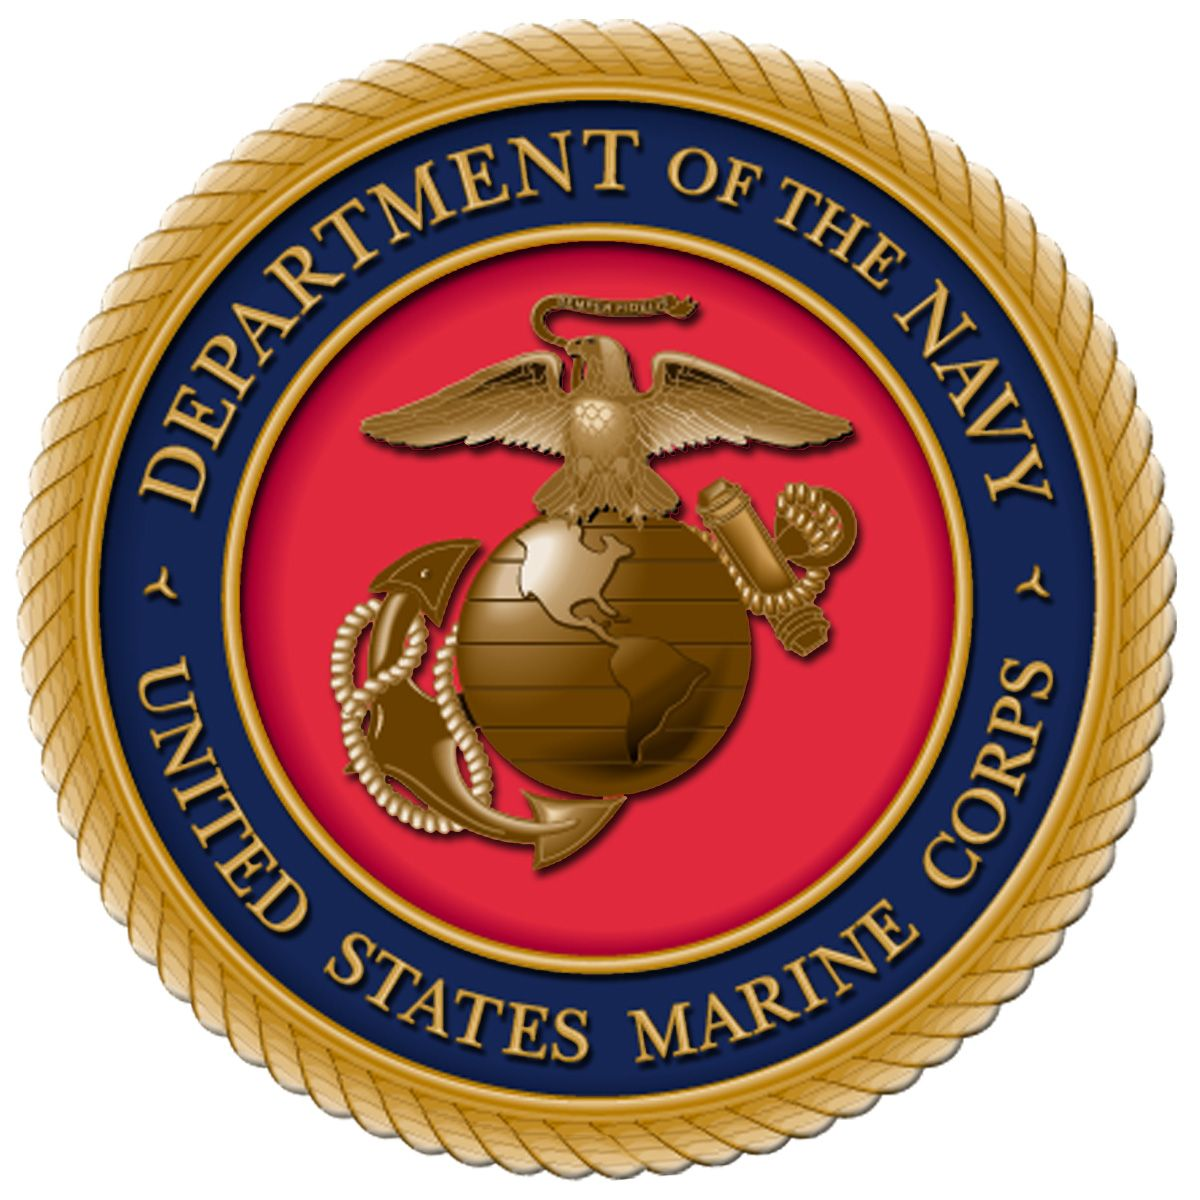 marine corps logo HD Wallpapers Download Free marine corps